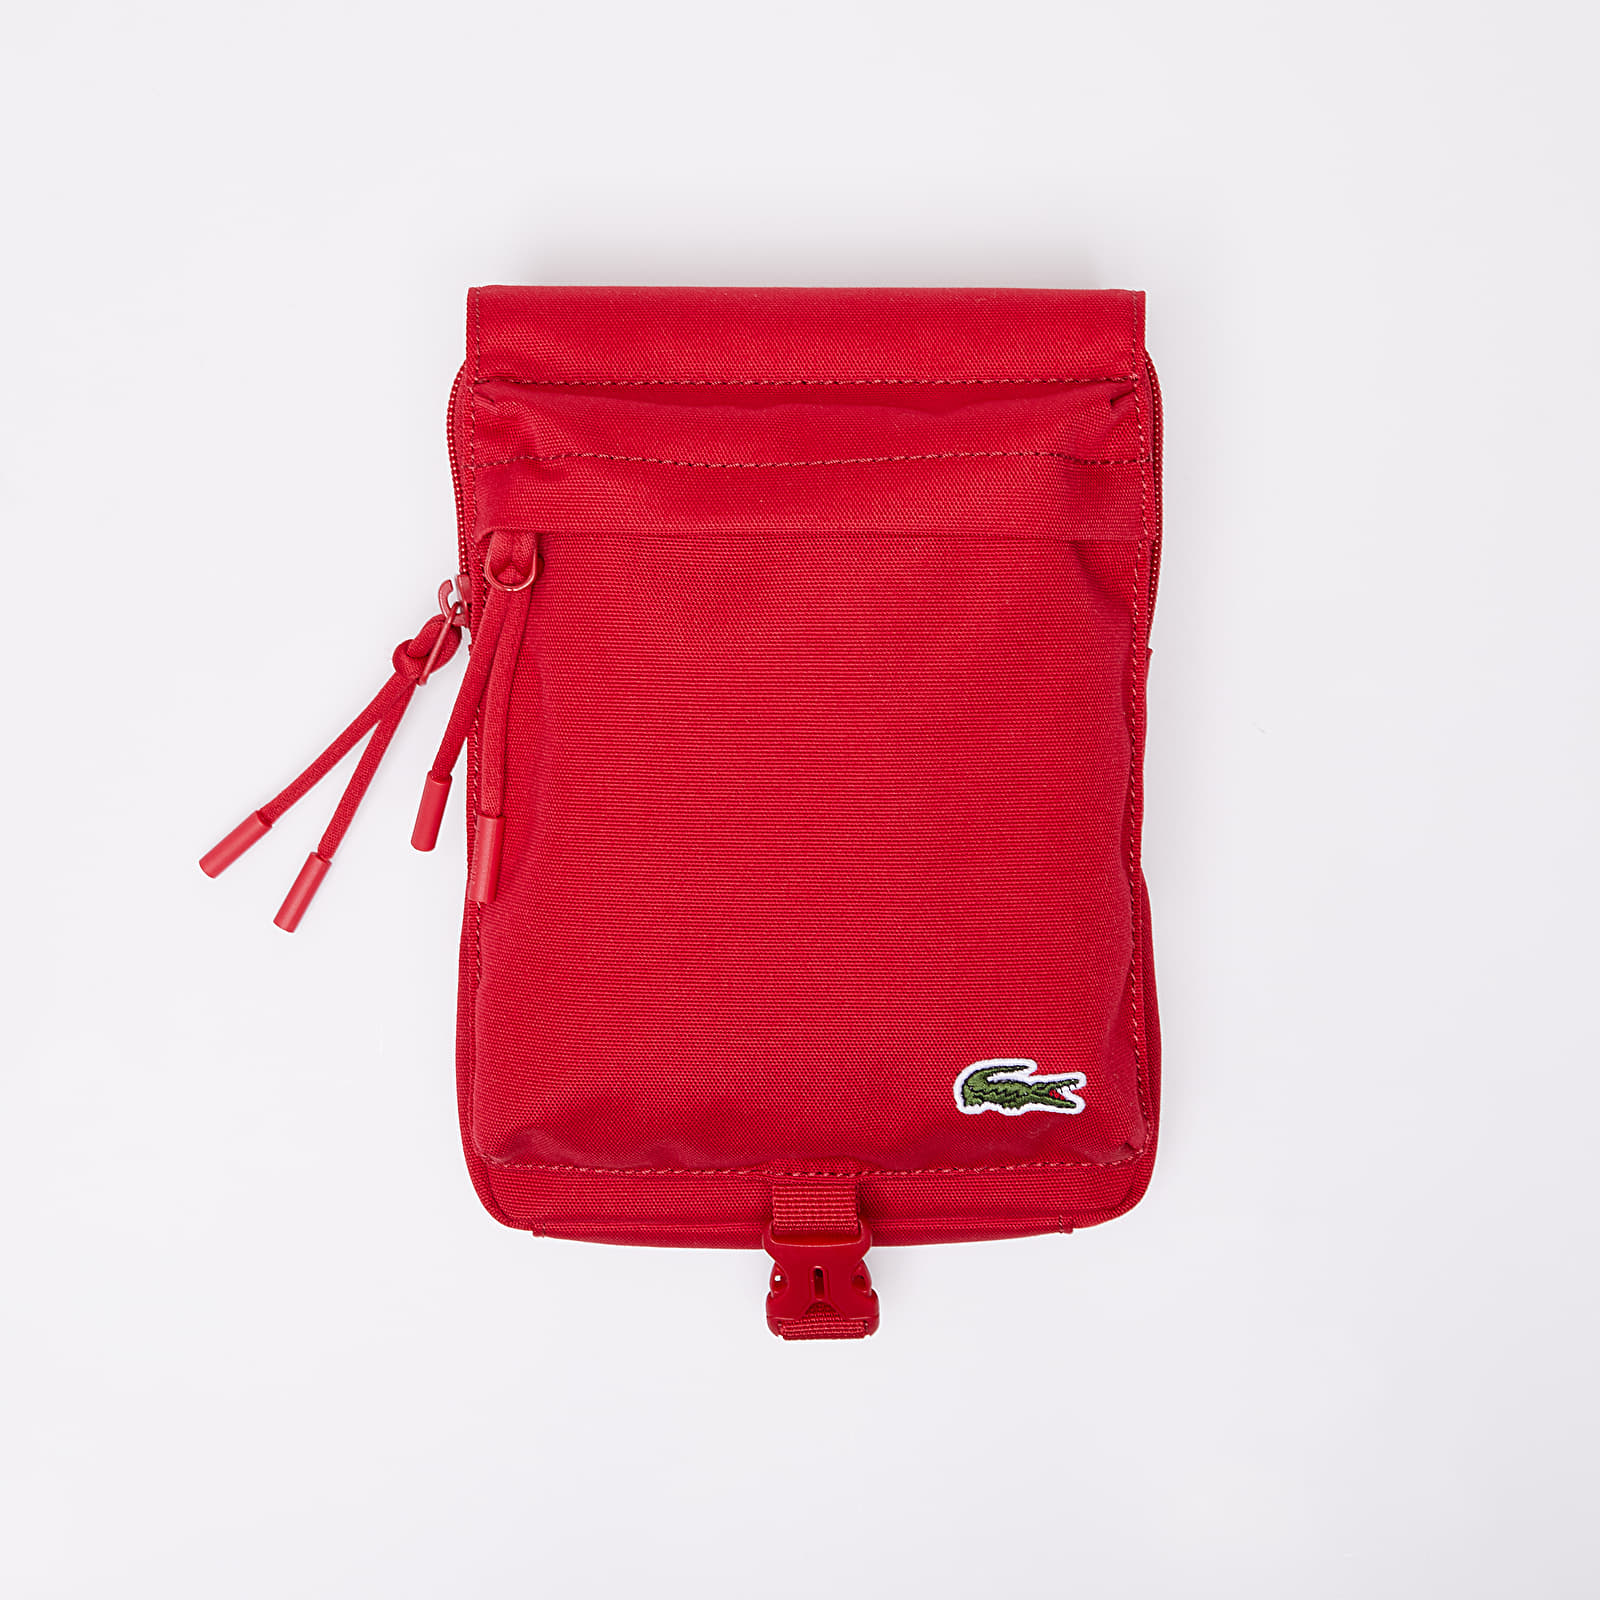 Bags LACOSTE Necklace Wallet Tango Red